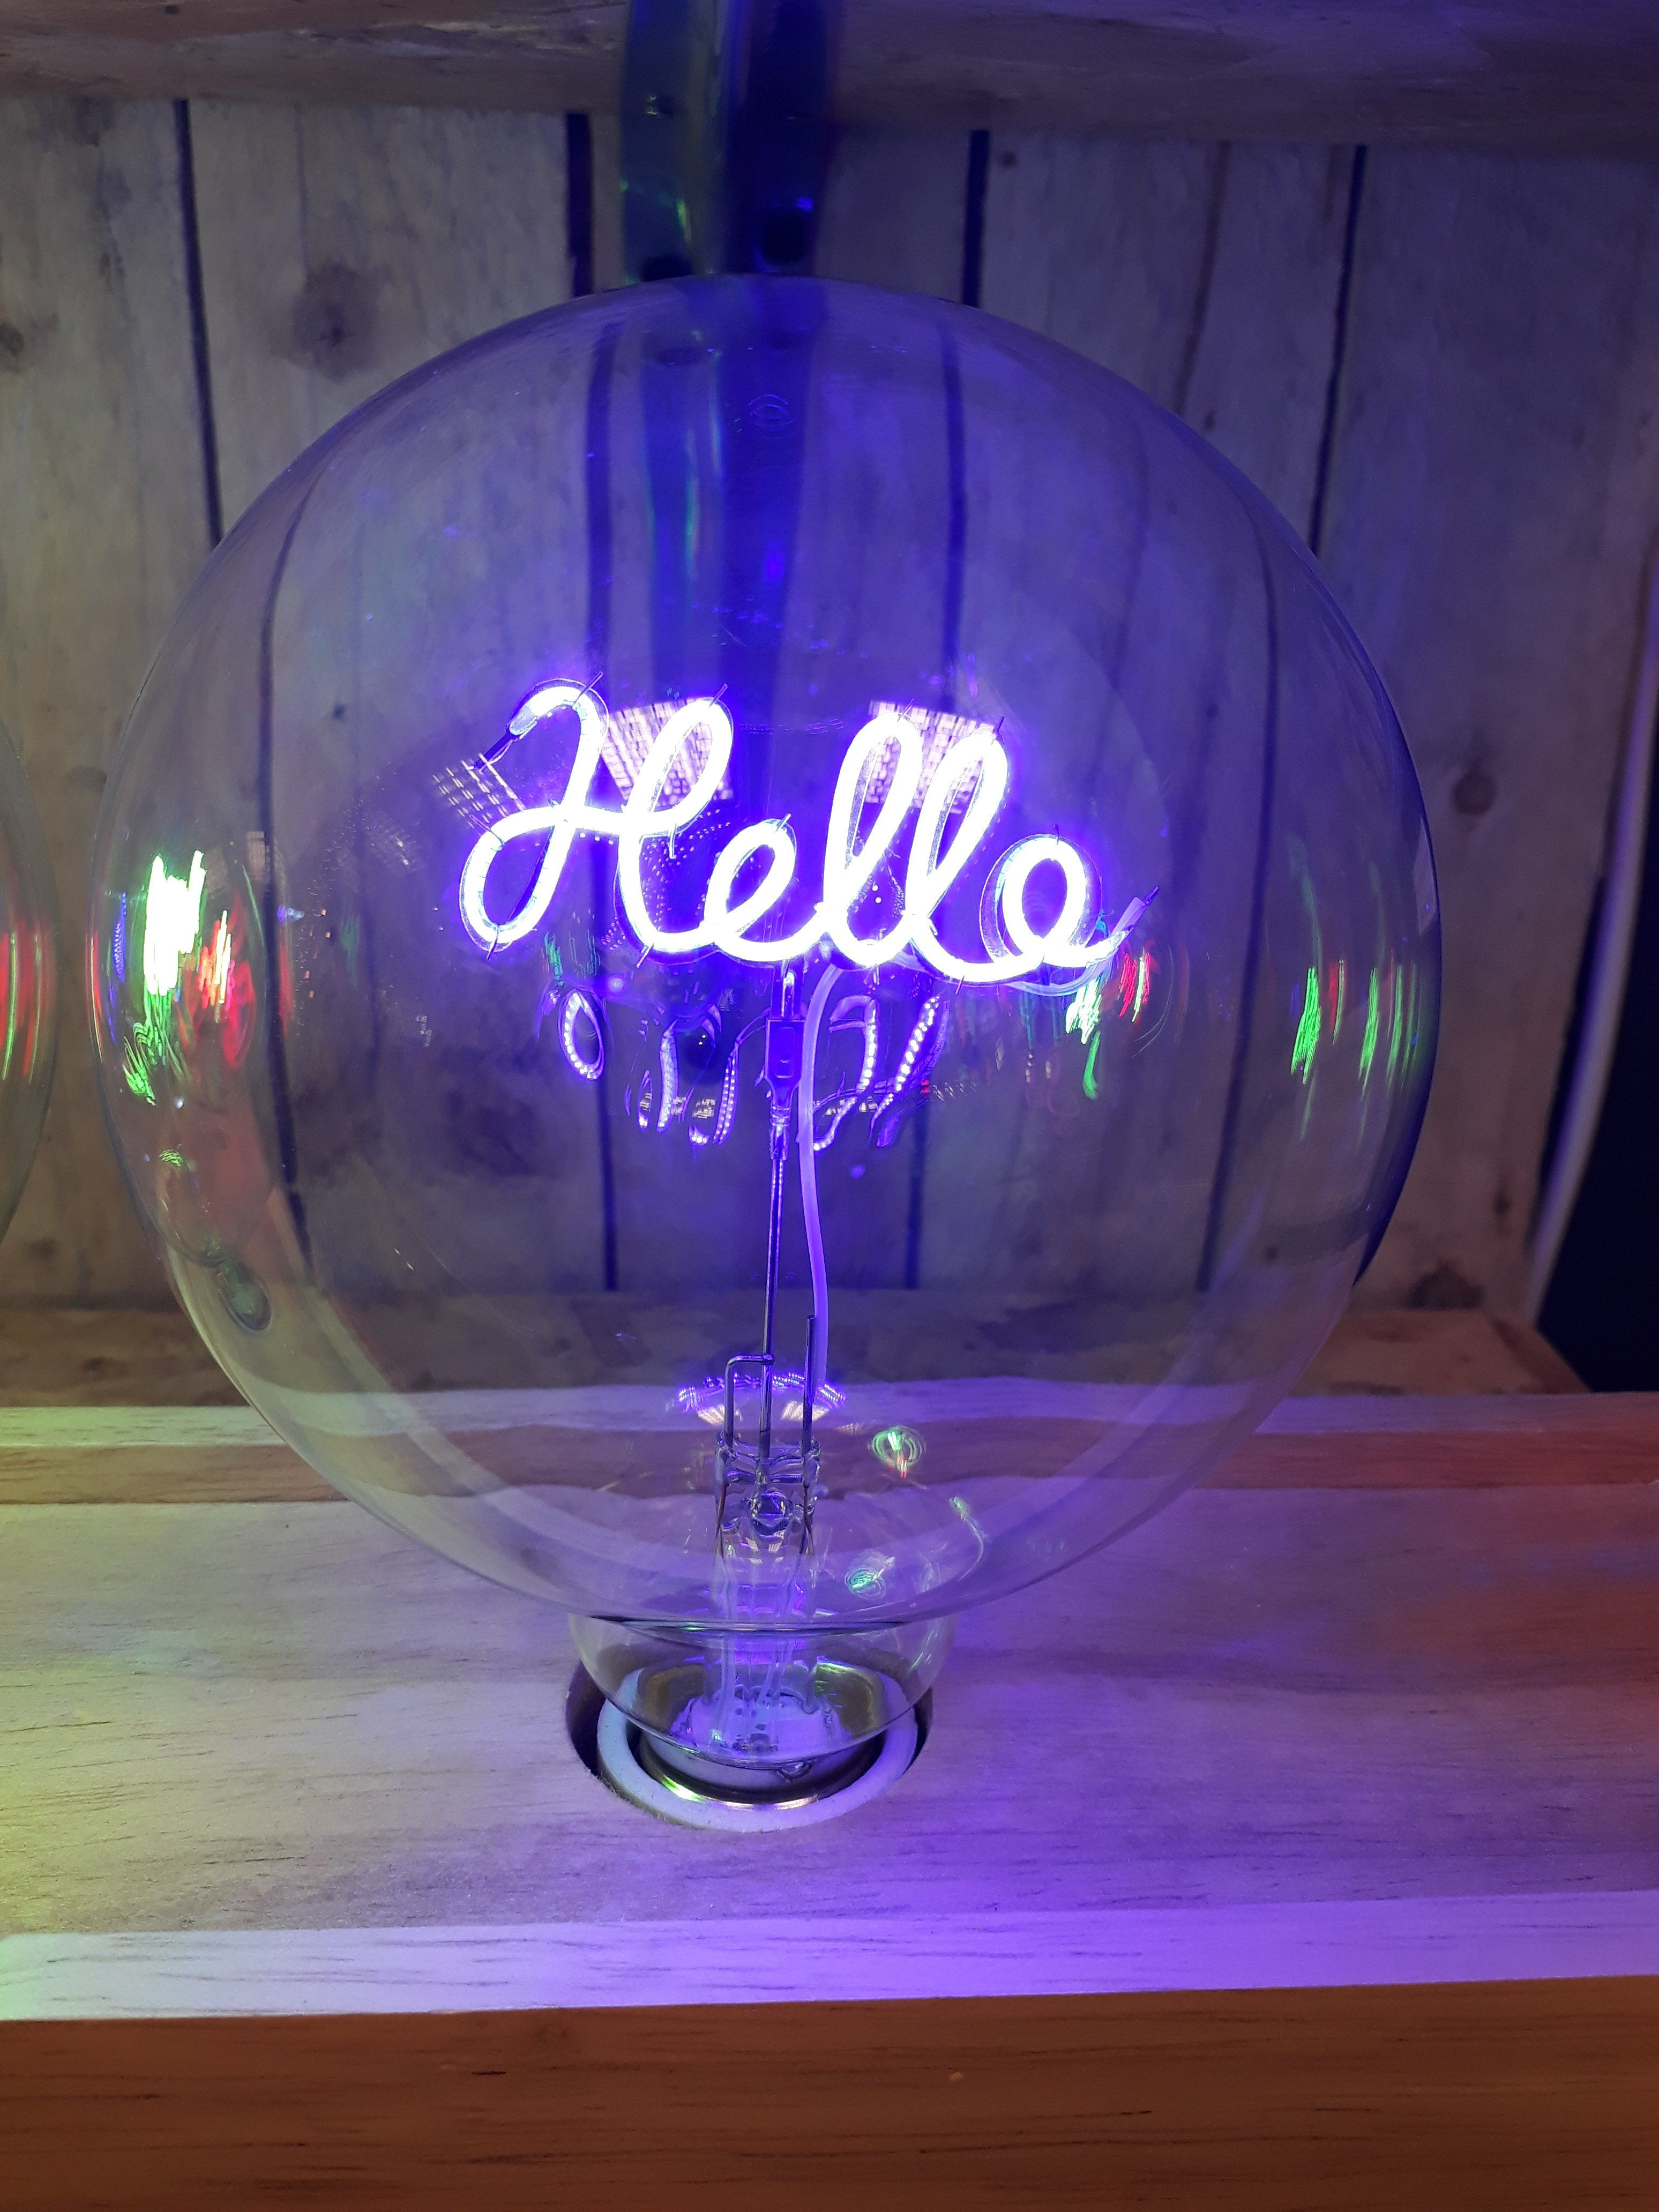 Amber Bright LED Message in a Bulb - Table Light - Hello Upright (bulb only)